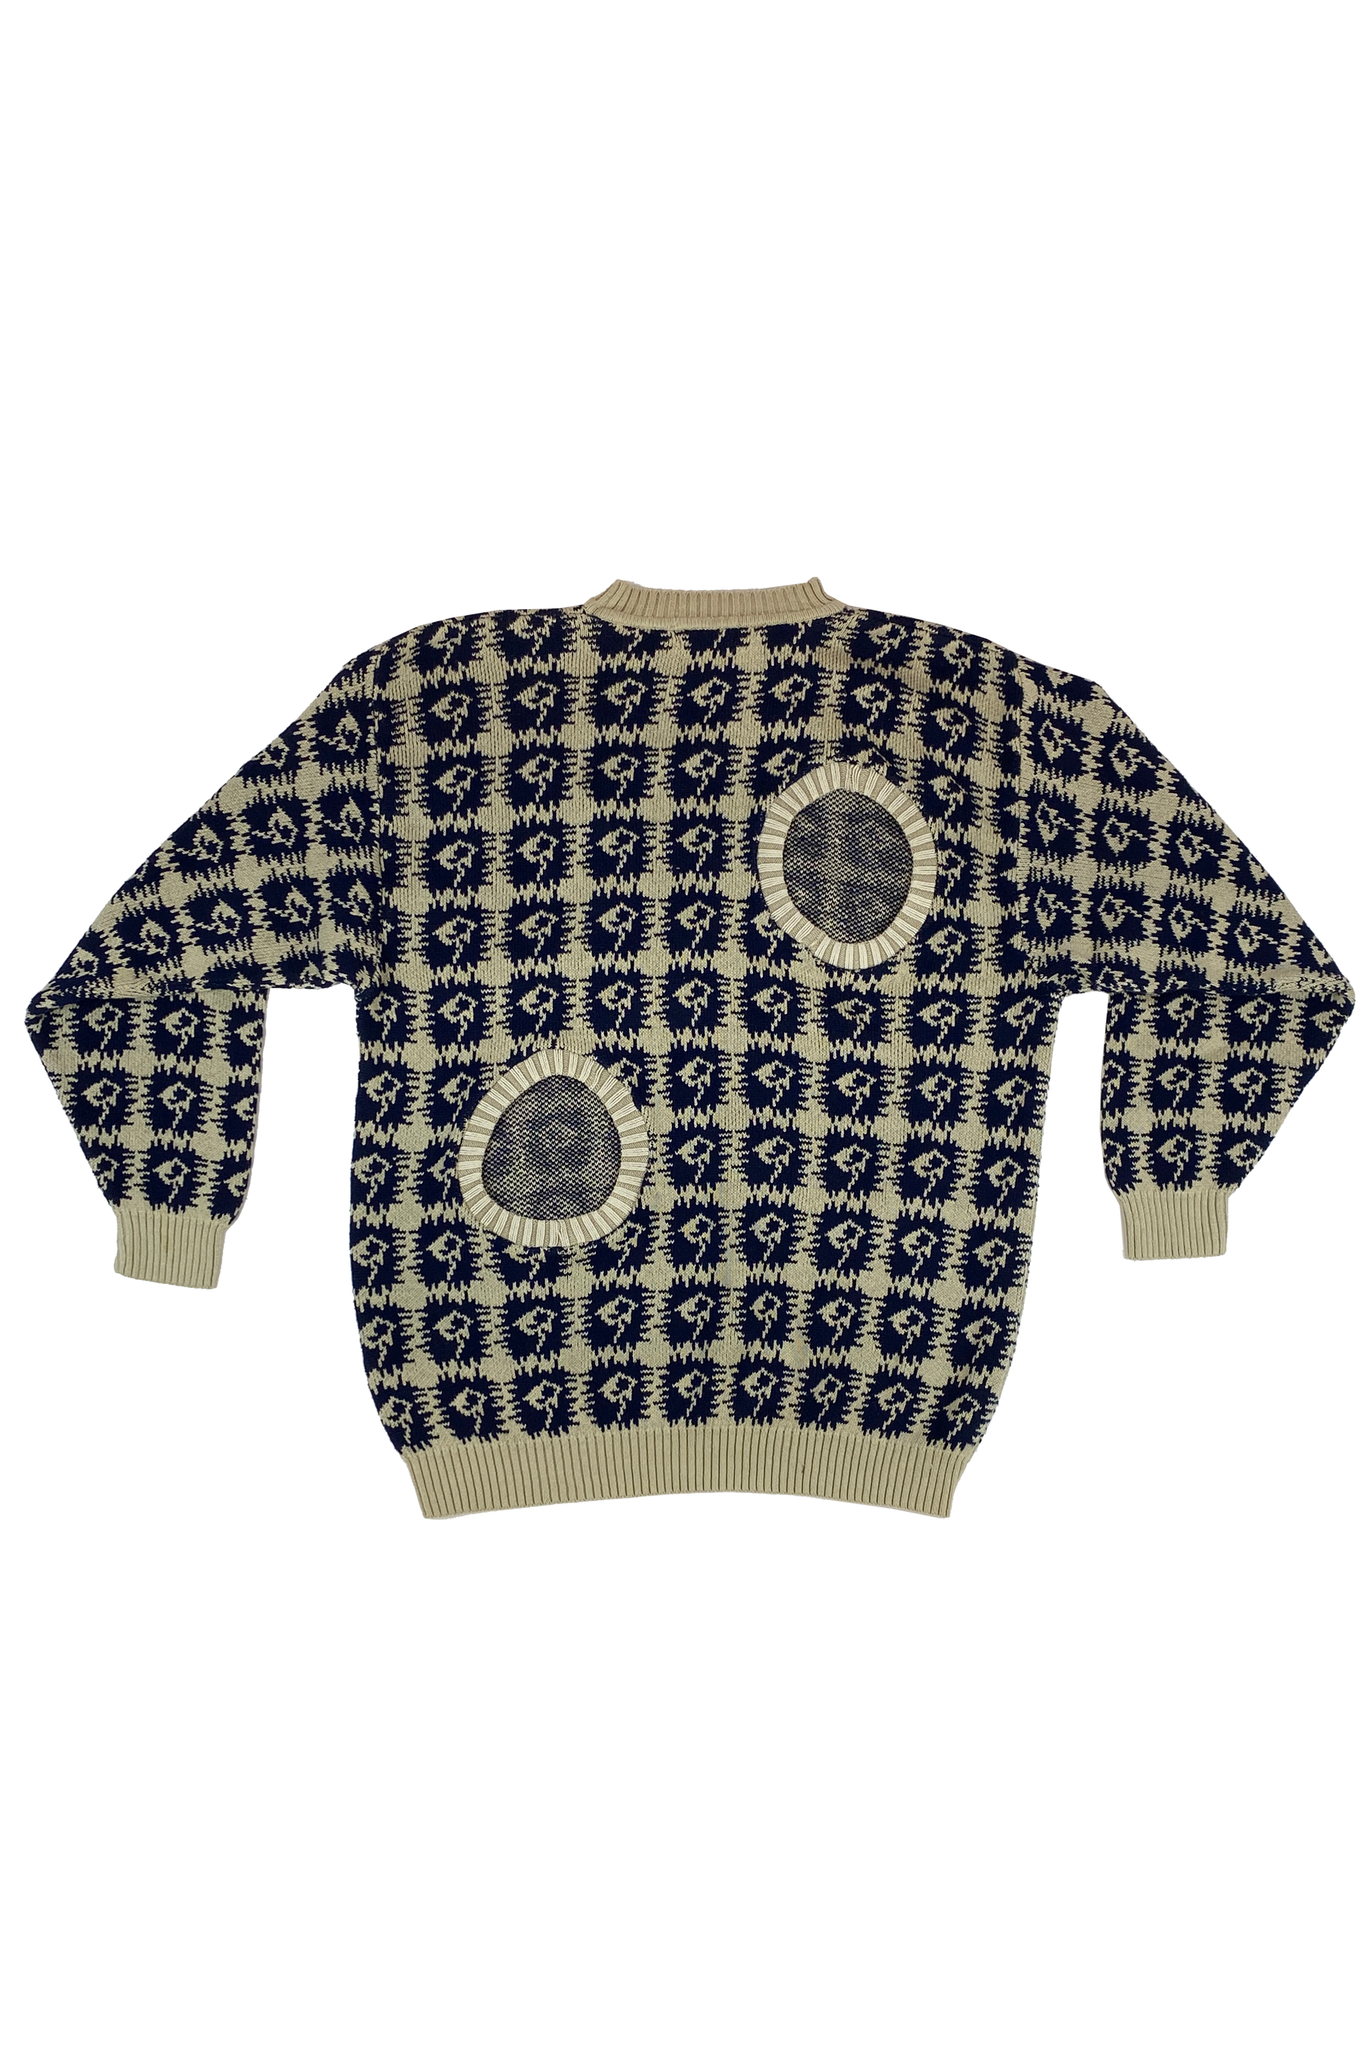 Glory whole sweater